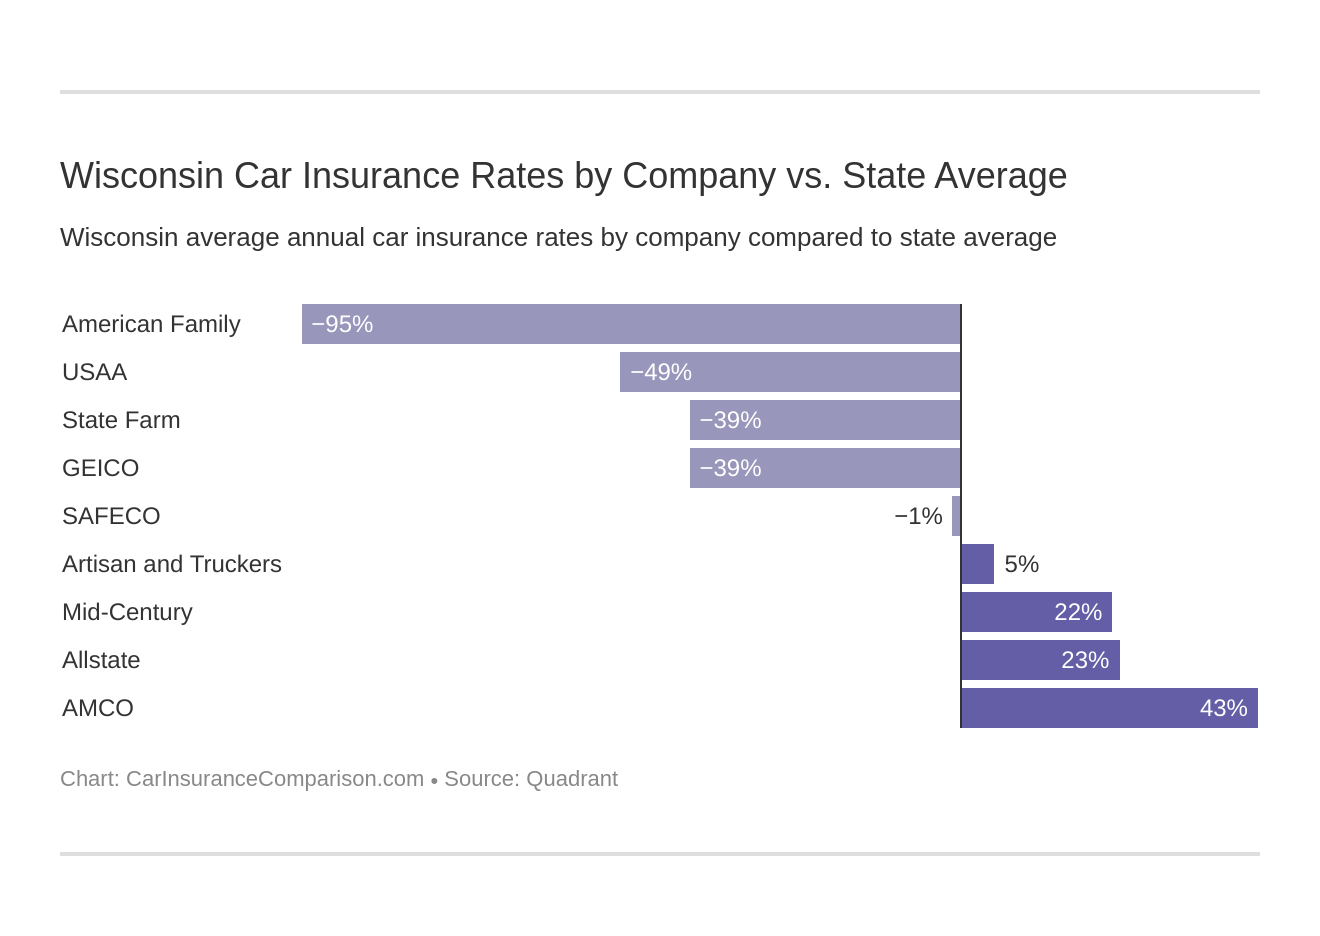 Wisconsin Car Insurance Rates by Company vs. State Average